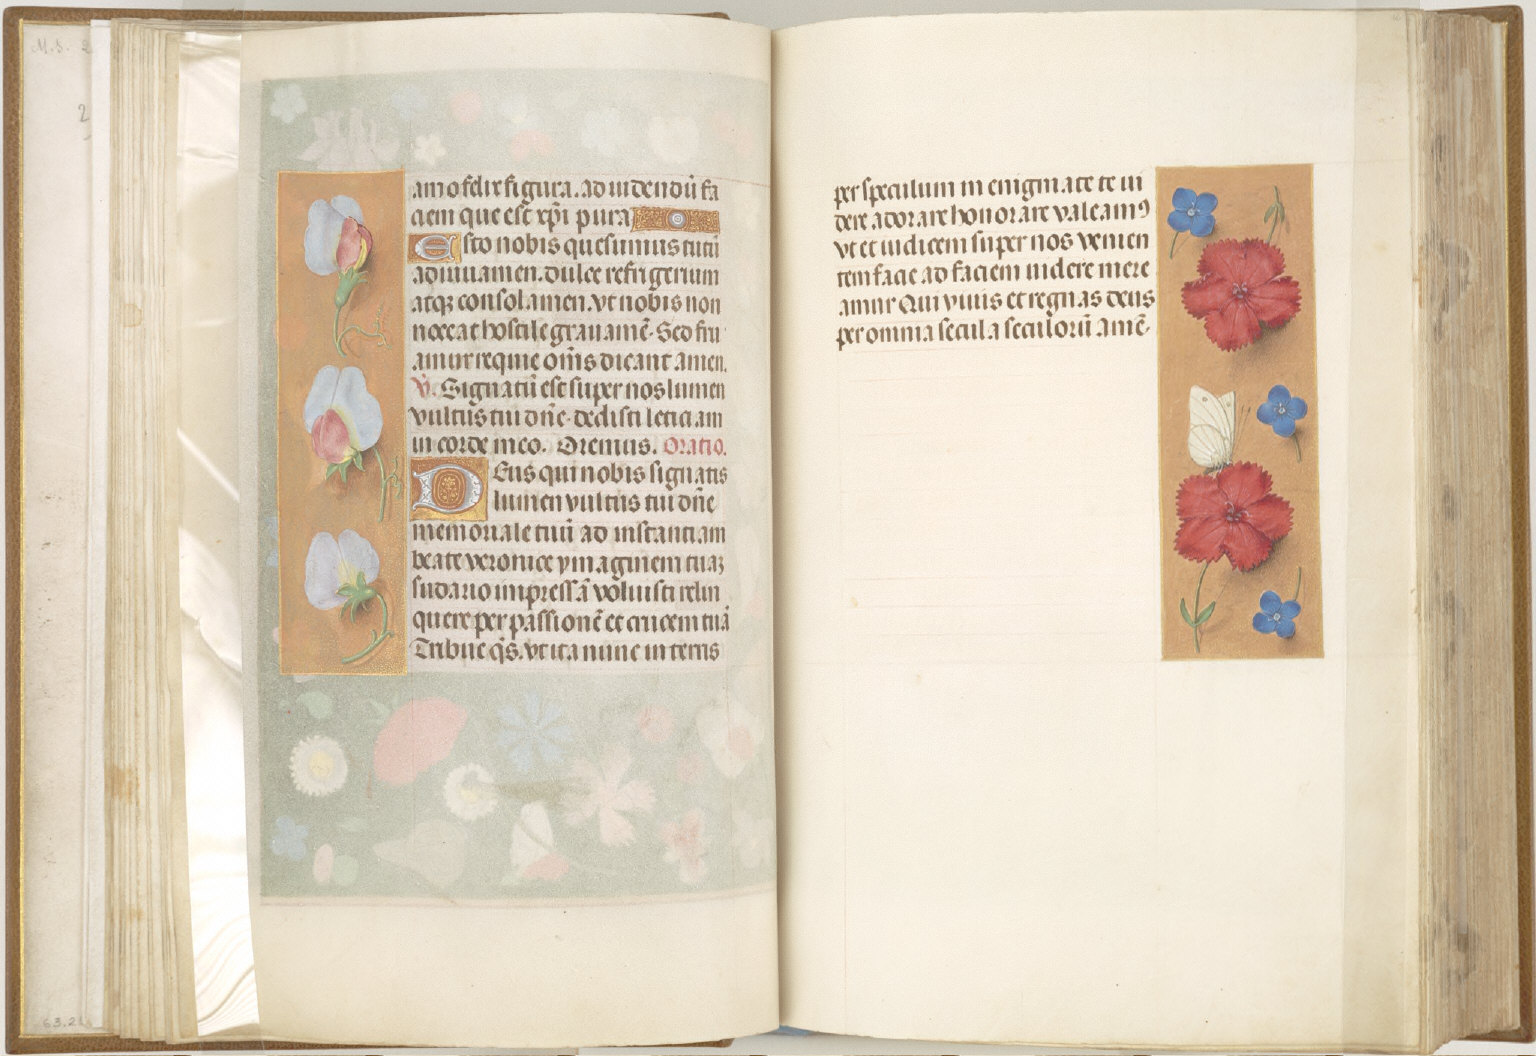 Hours of Queen Isabella the Catholic, Queen of Spain, fol. 15 (verso)